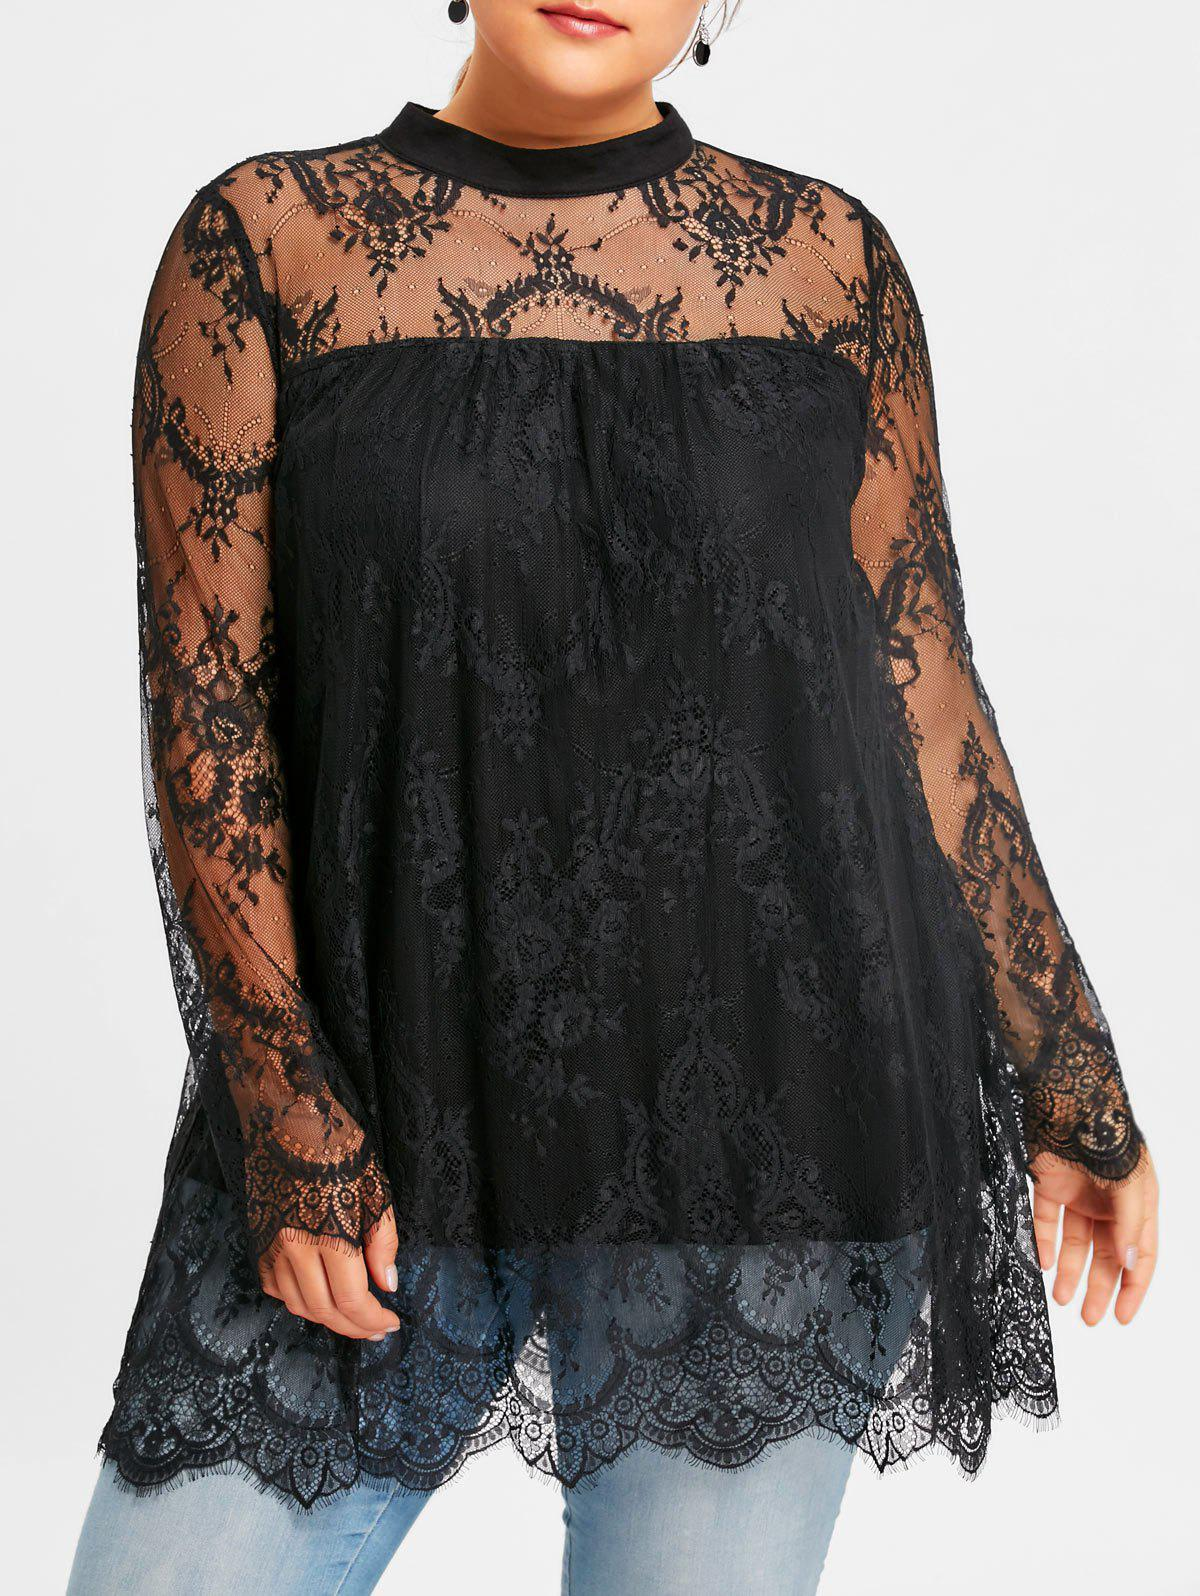 Plus Size Sheer Lace Scalloped Edge BlouseWOMEN<br><br>Size: 4XL; Color: BLACK; Material: Nylon,Spandex; Shirt Length: Long; Sleeve Length: Full; Collar: Mock Neck; Style: Fashion; Season: Fall,Spring; Embellishment: Lace; Pattern Type: Floral; Weight: 0.3000kg; Package Contents: 1 x Blouse;